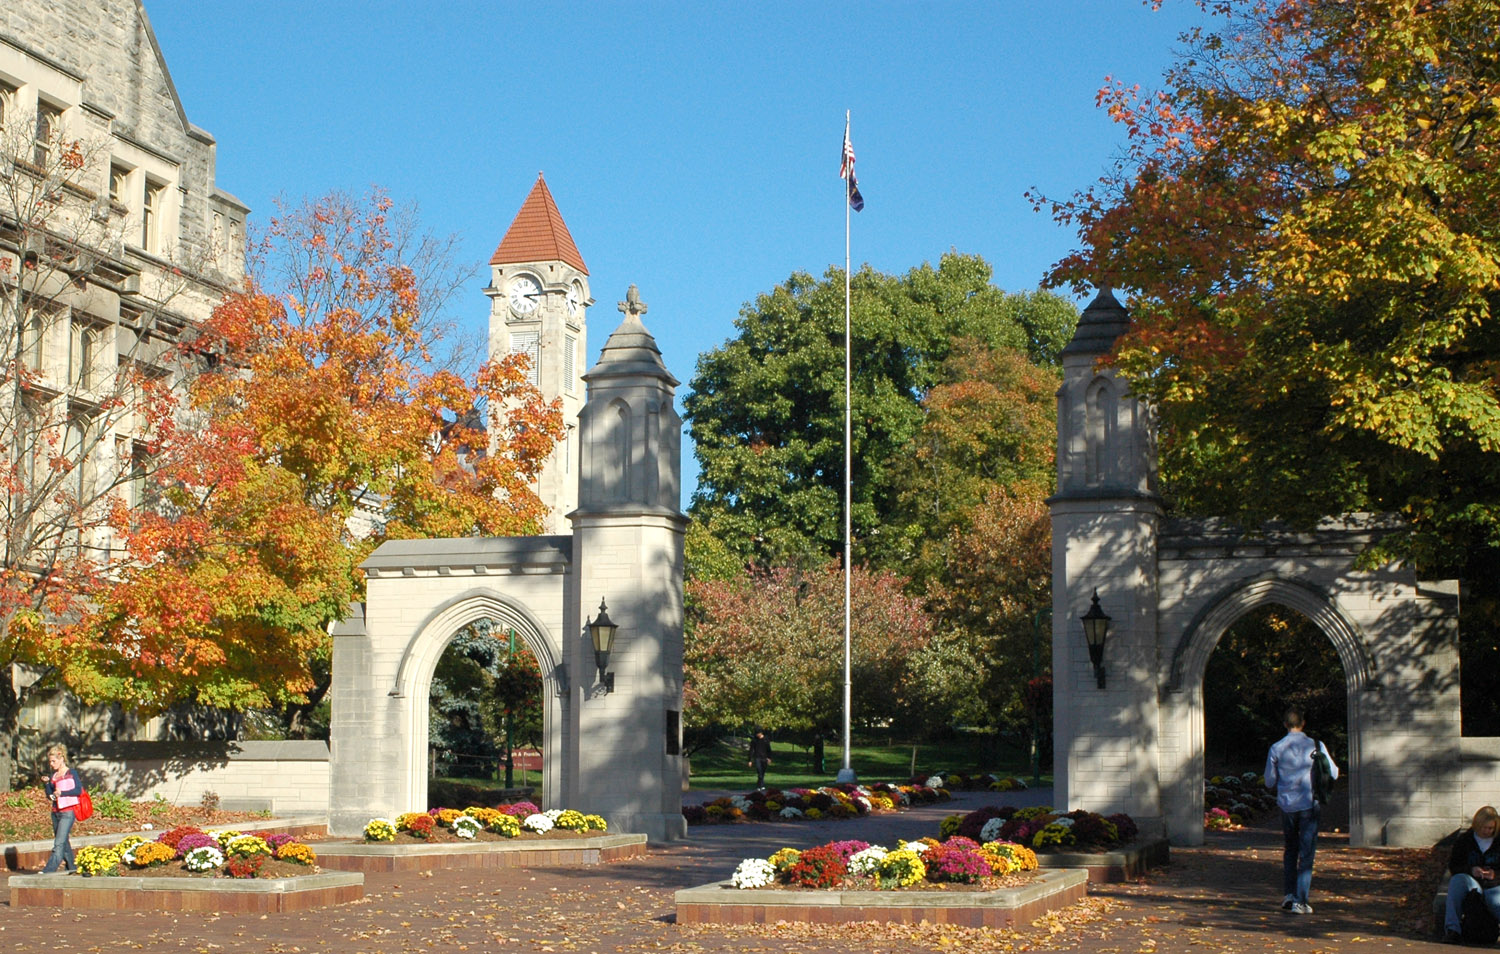 U of indiana bloomington personal essay